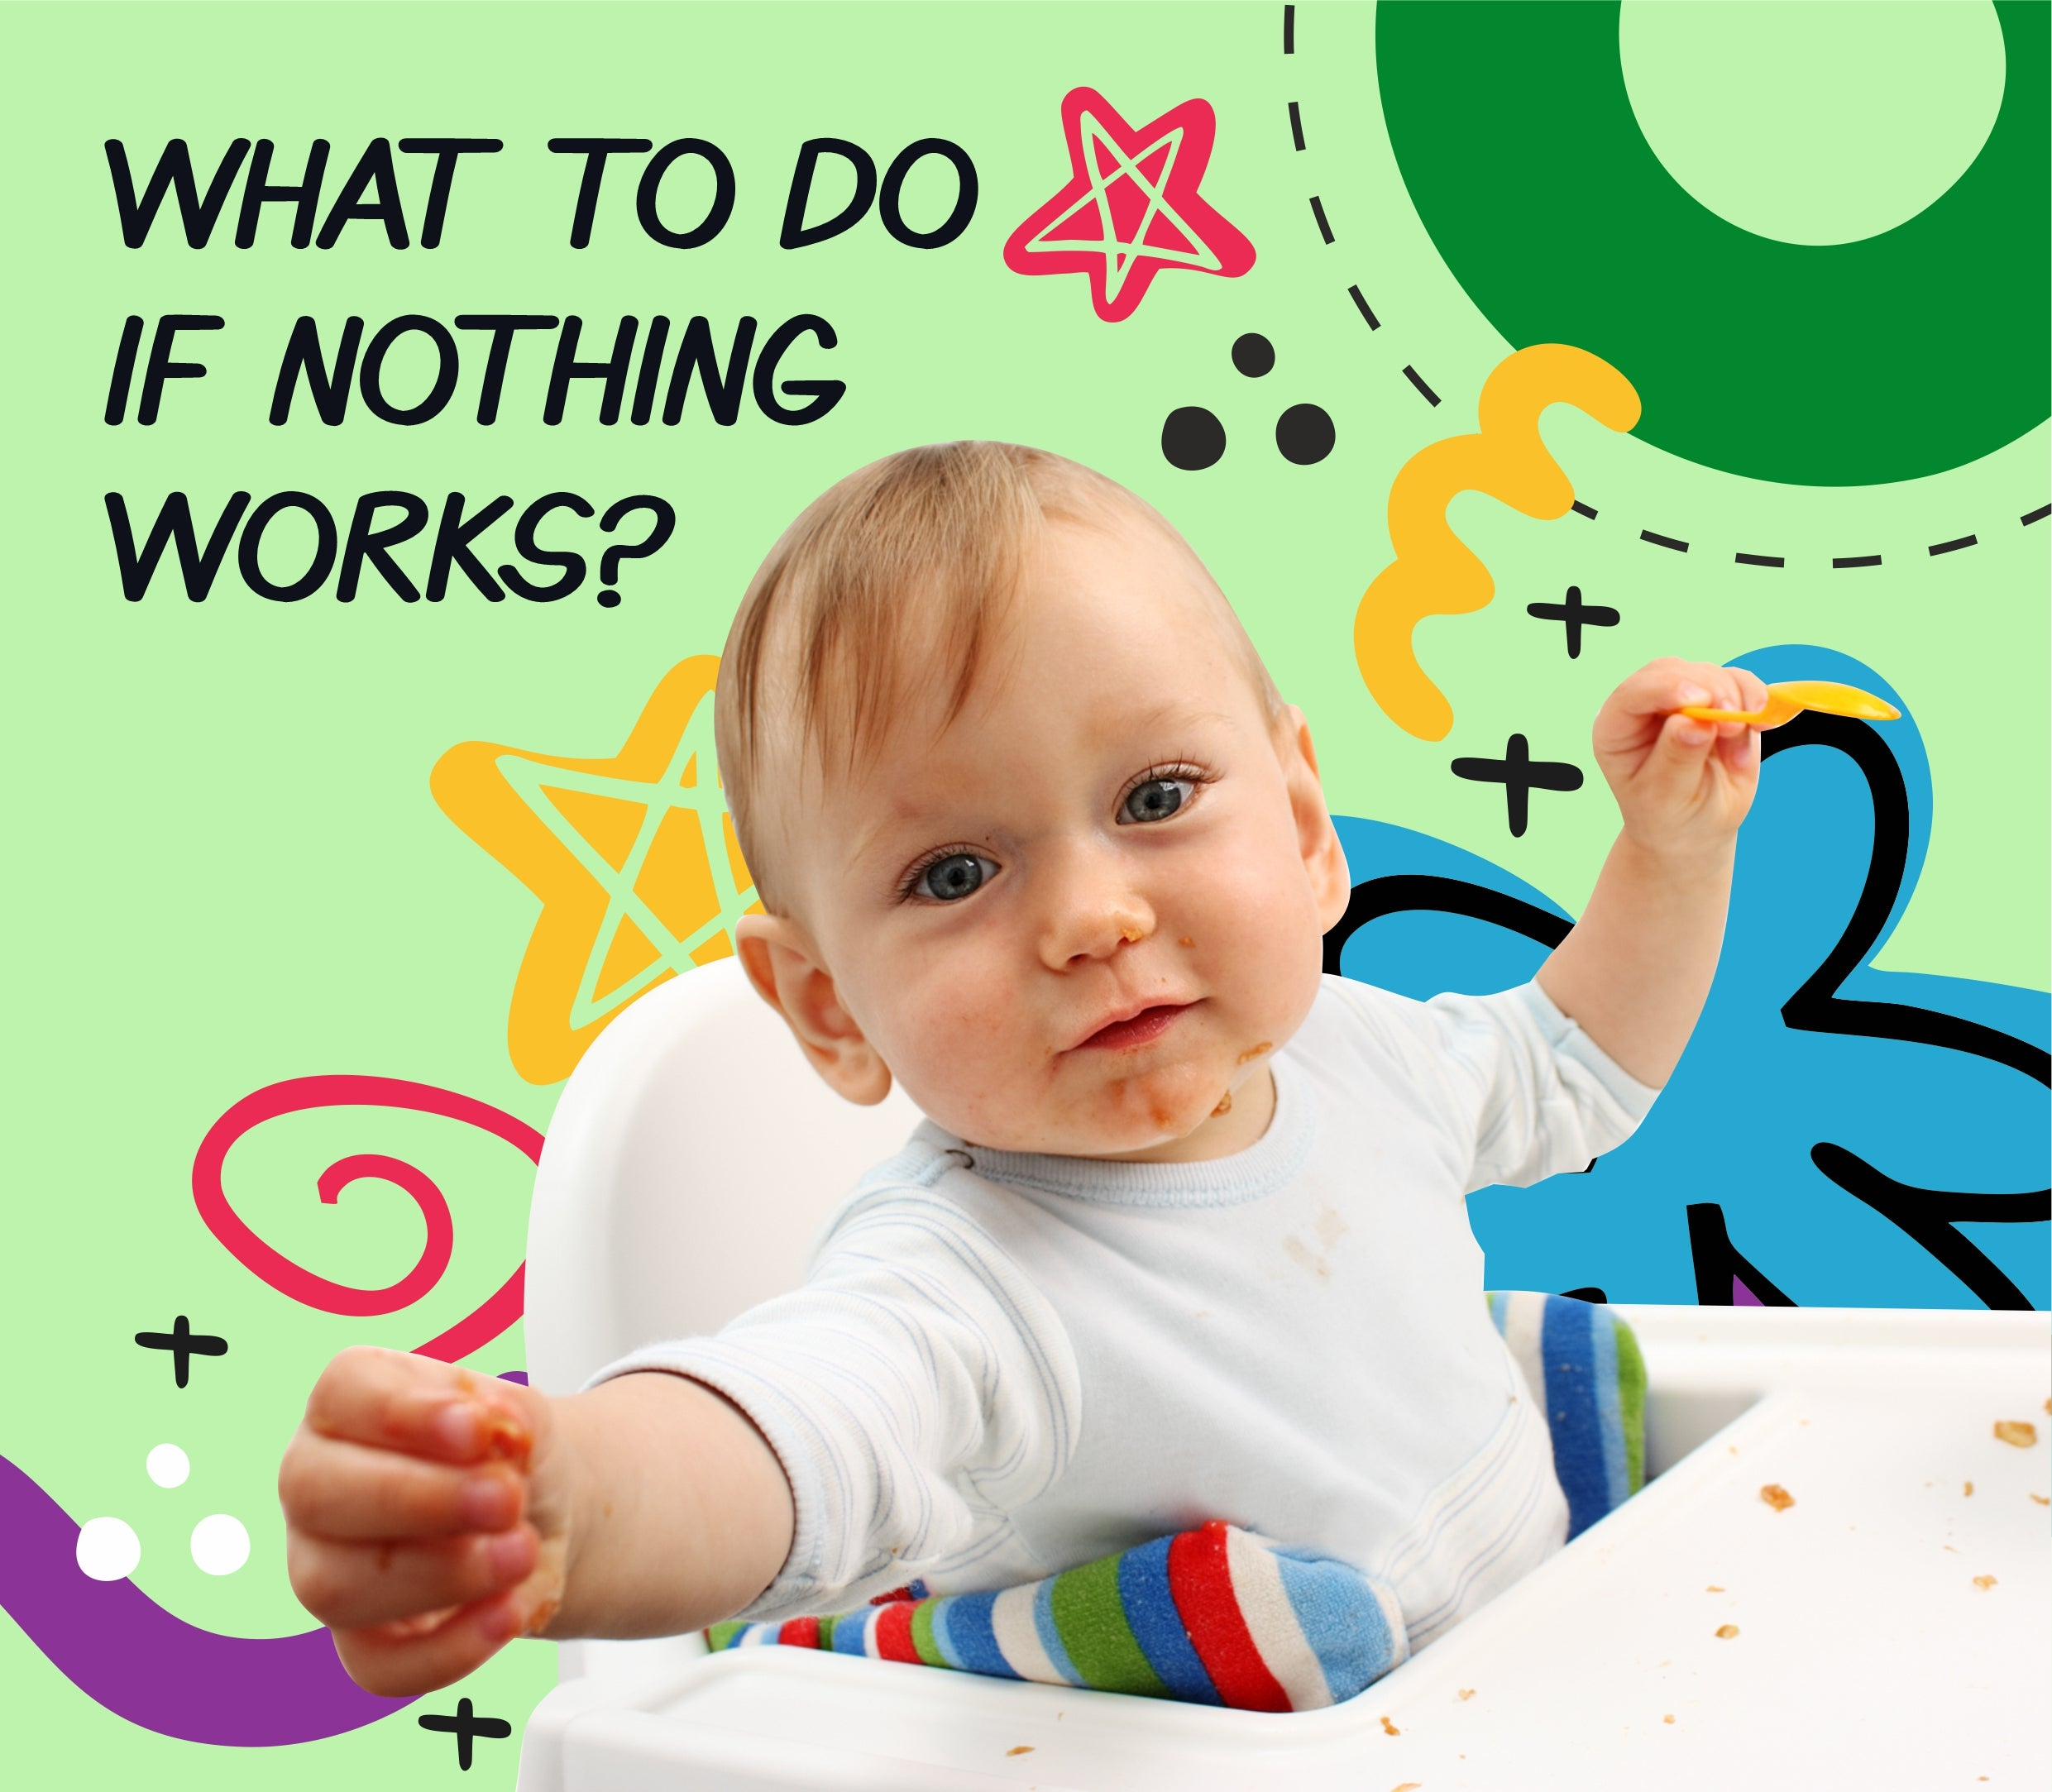 What to do if nothing works?